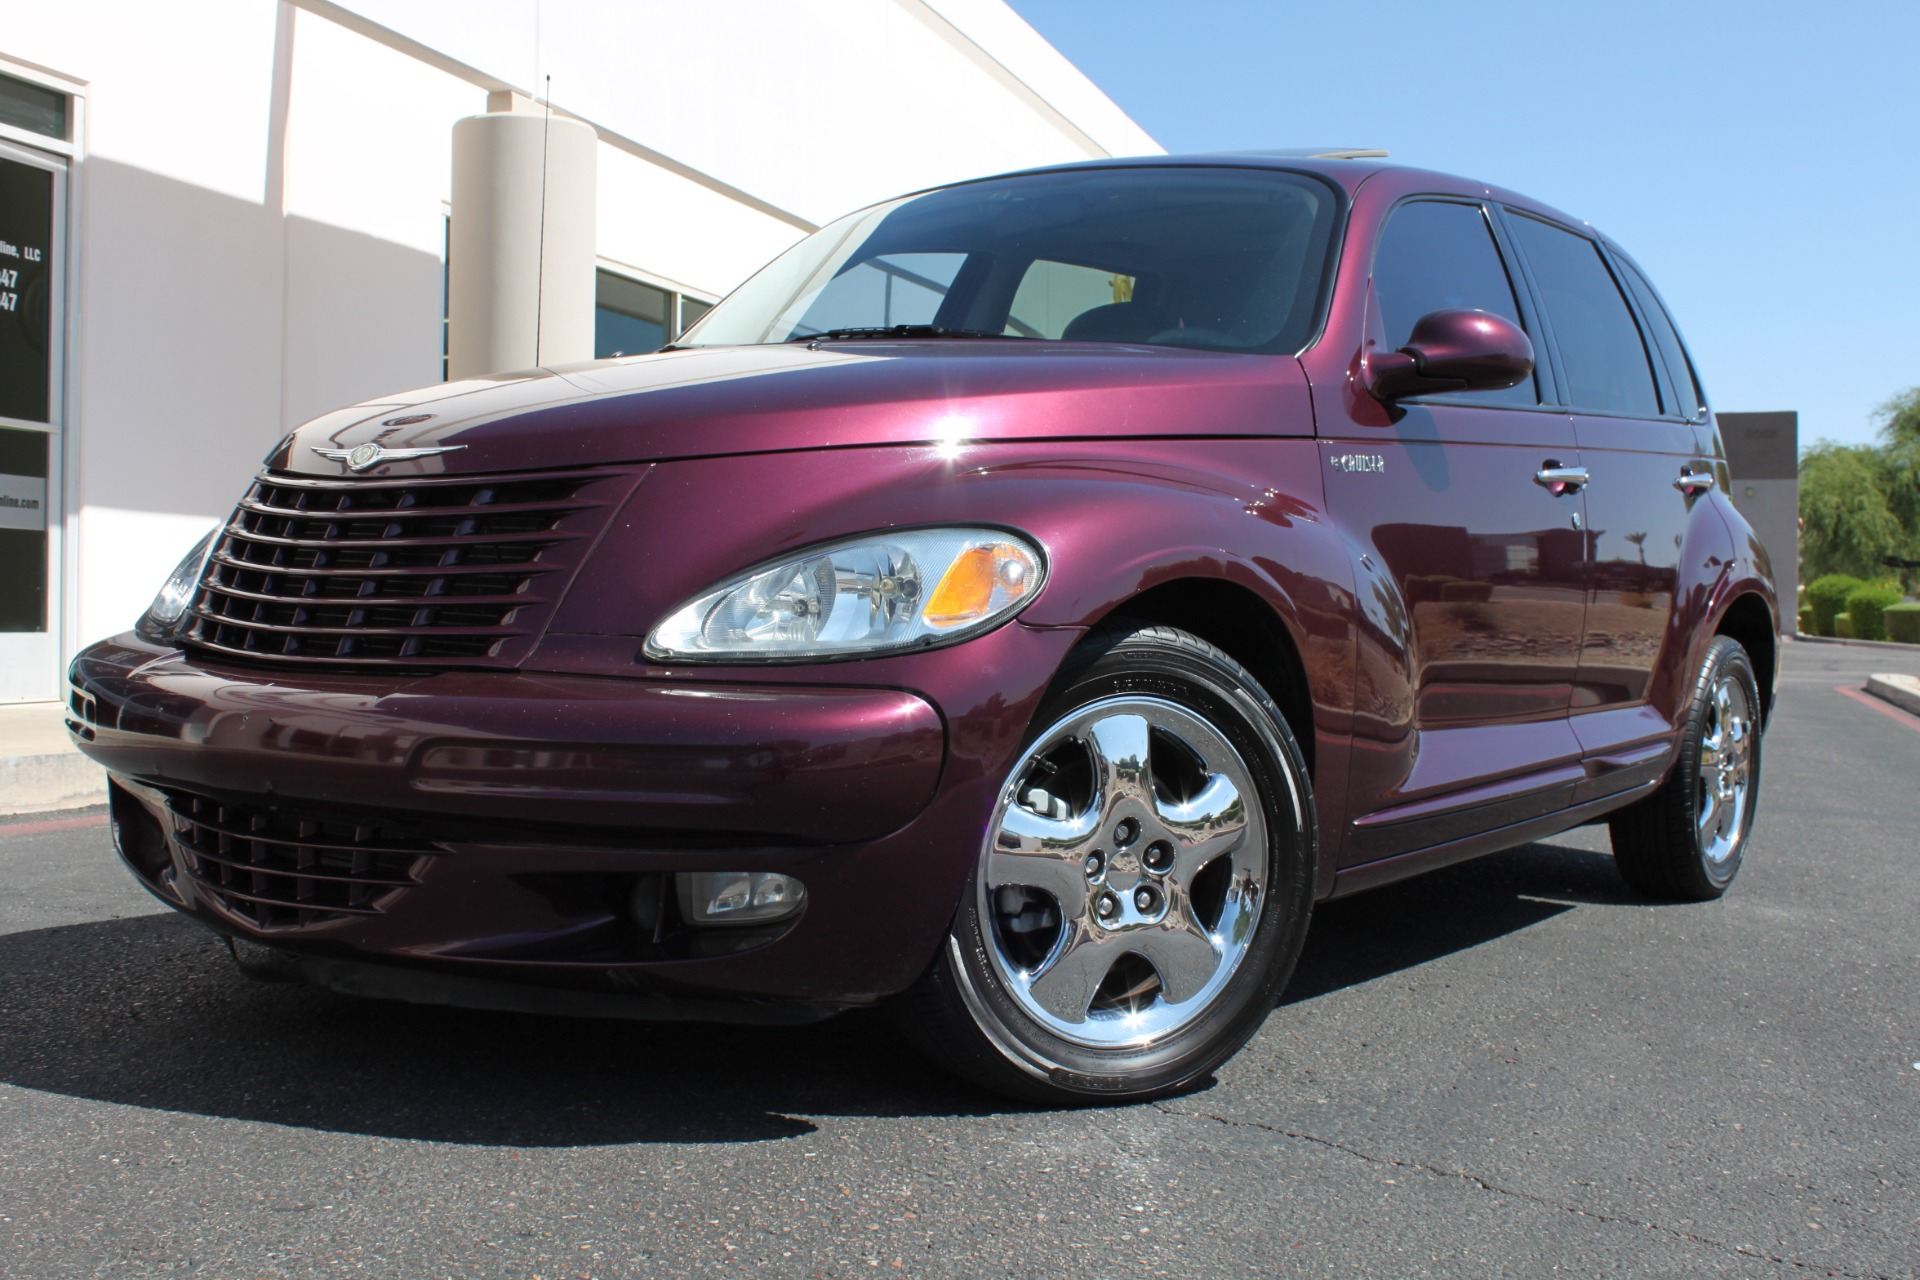 Used 2002 Chrysler PT Cruiser <span>Limited</span> | Scottsdale, AZ